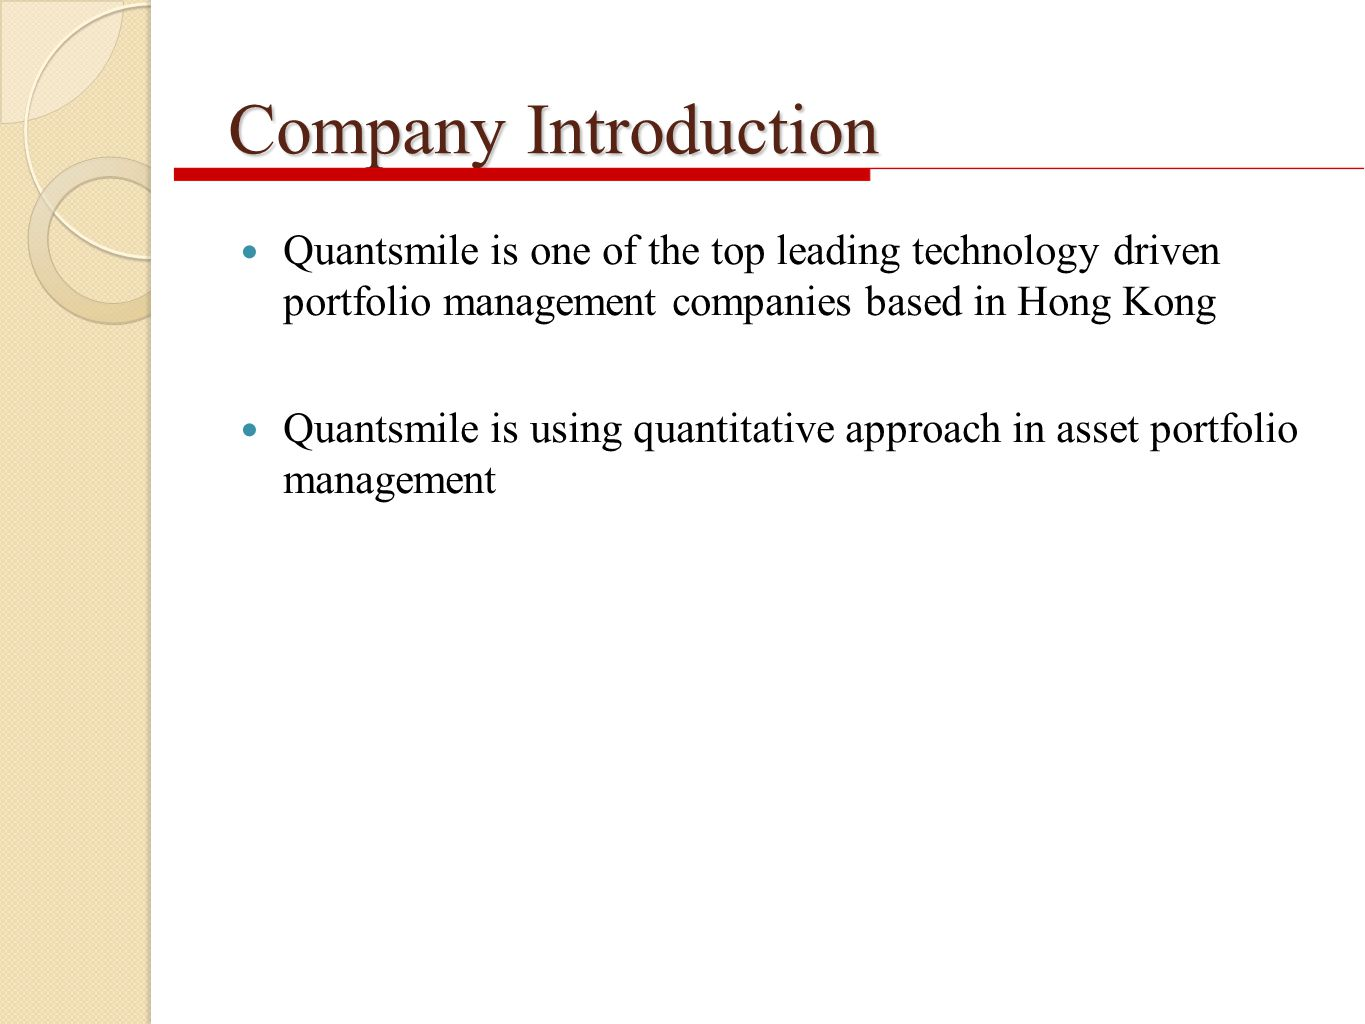 Company Introduction Quantsmile is one of the top leading technology driven portfolio management companies based in Hong Kong Quantsmile is using quantitative approach in asset portfolio management